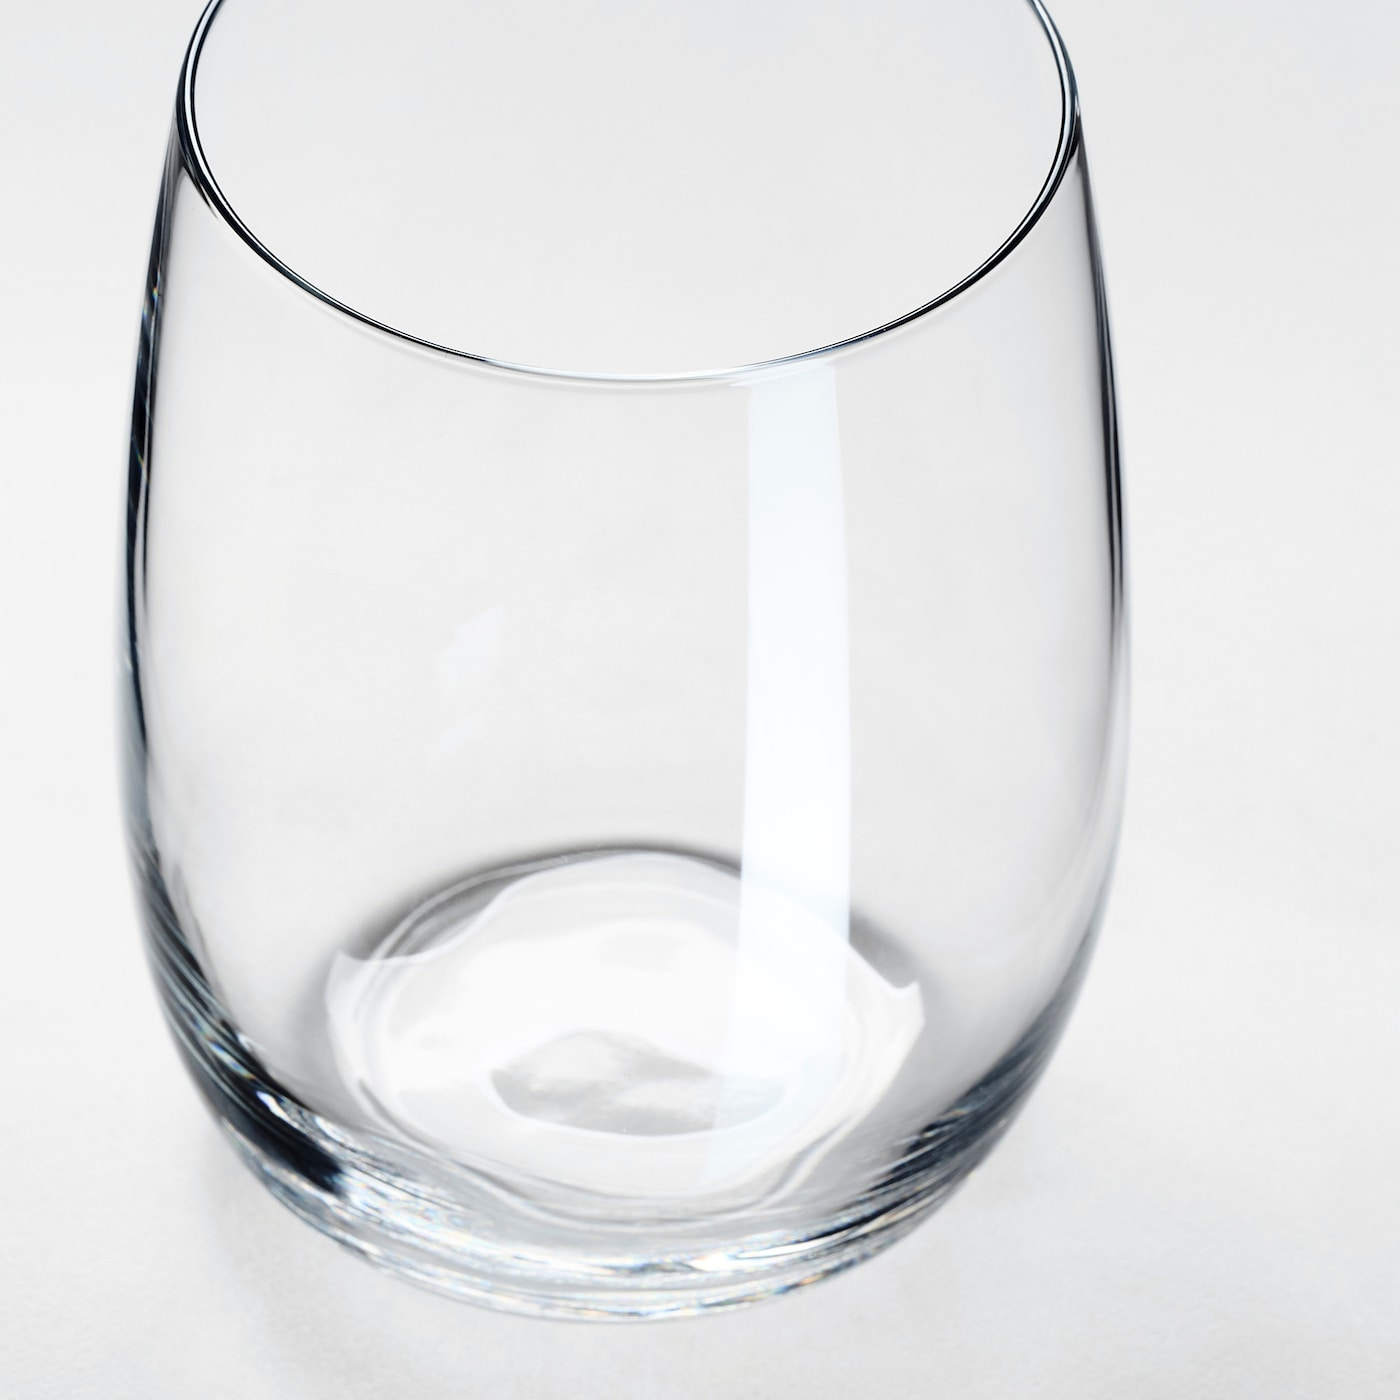 STORSINT Glass, clear glass, 37 cl